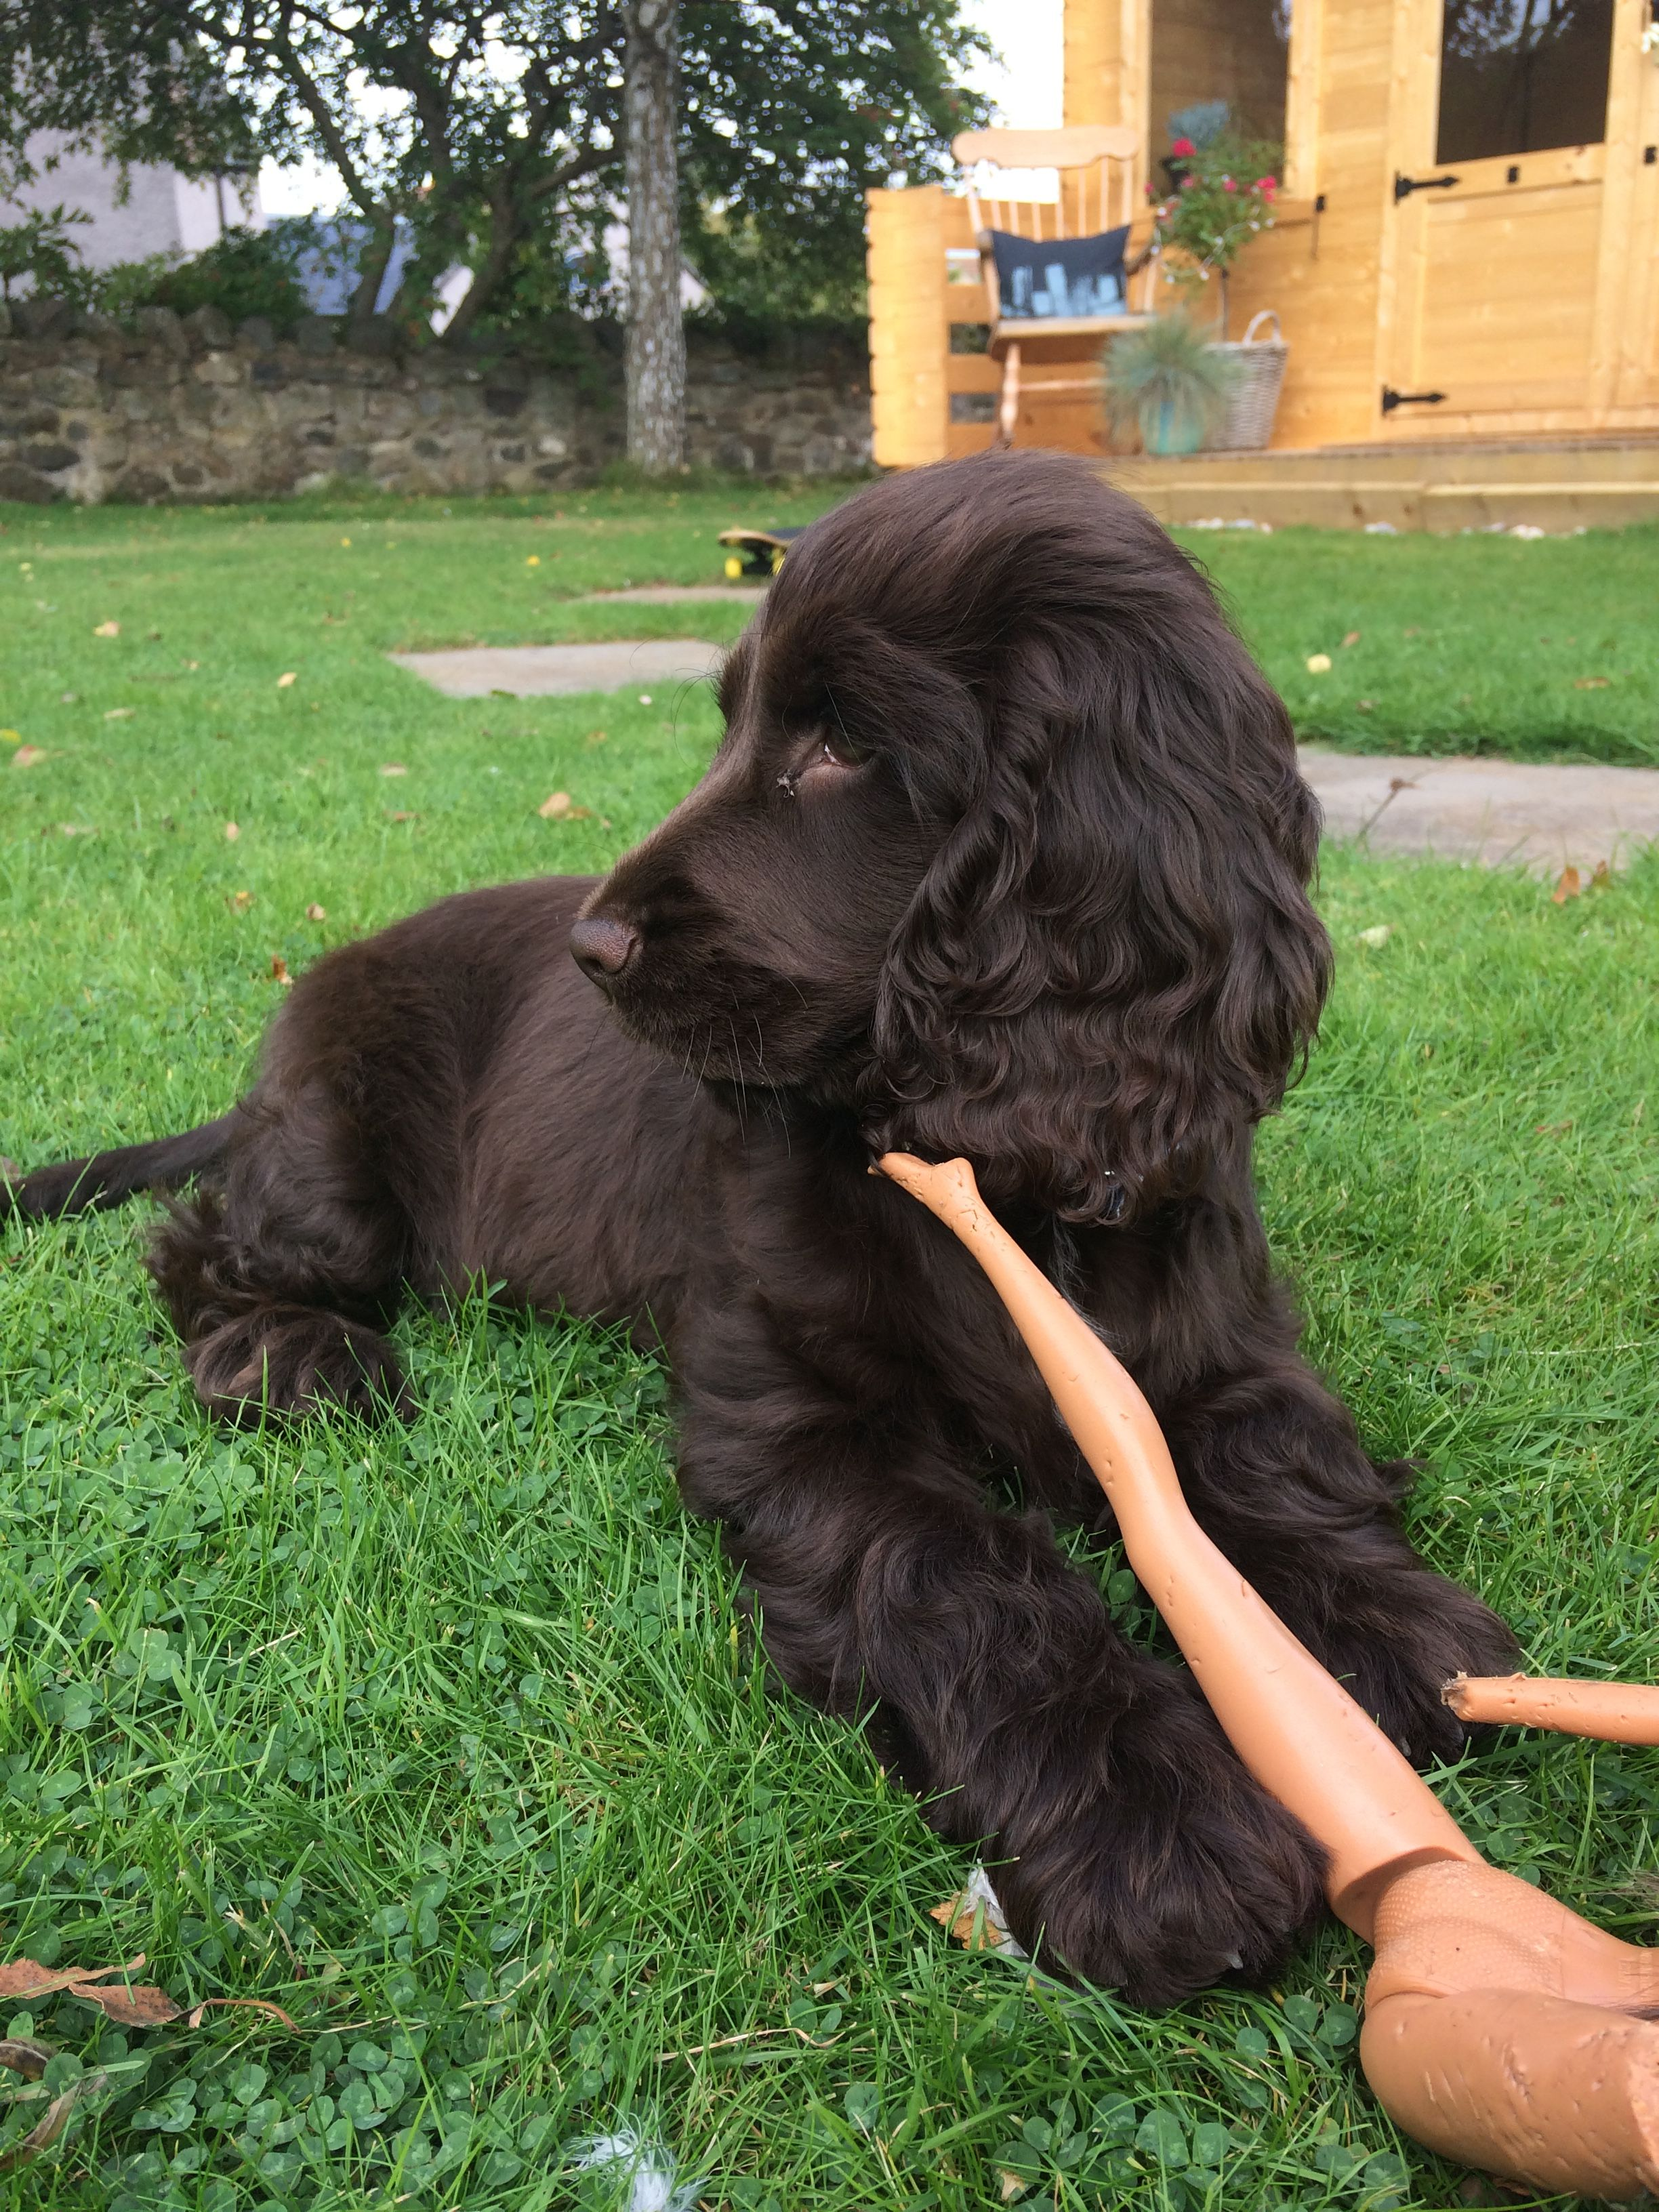 Pin By Tammy Clater On Pet With Images Cocker Spaniel Puppies